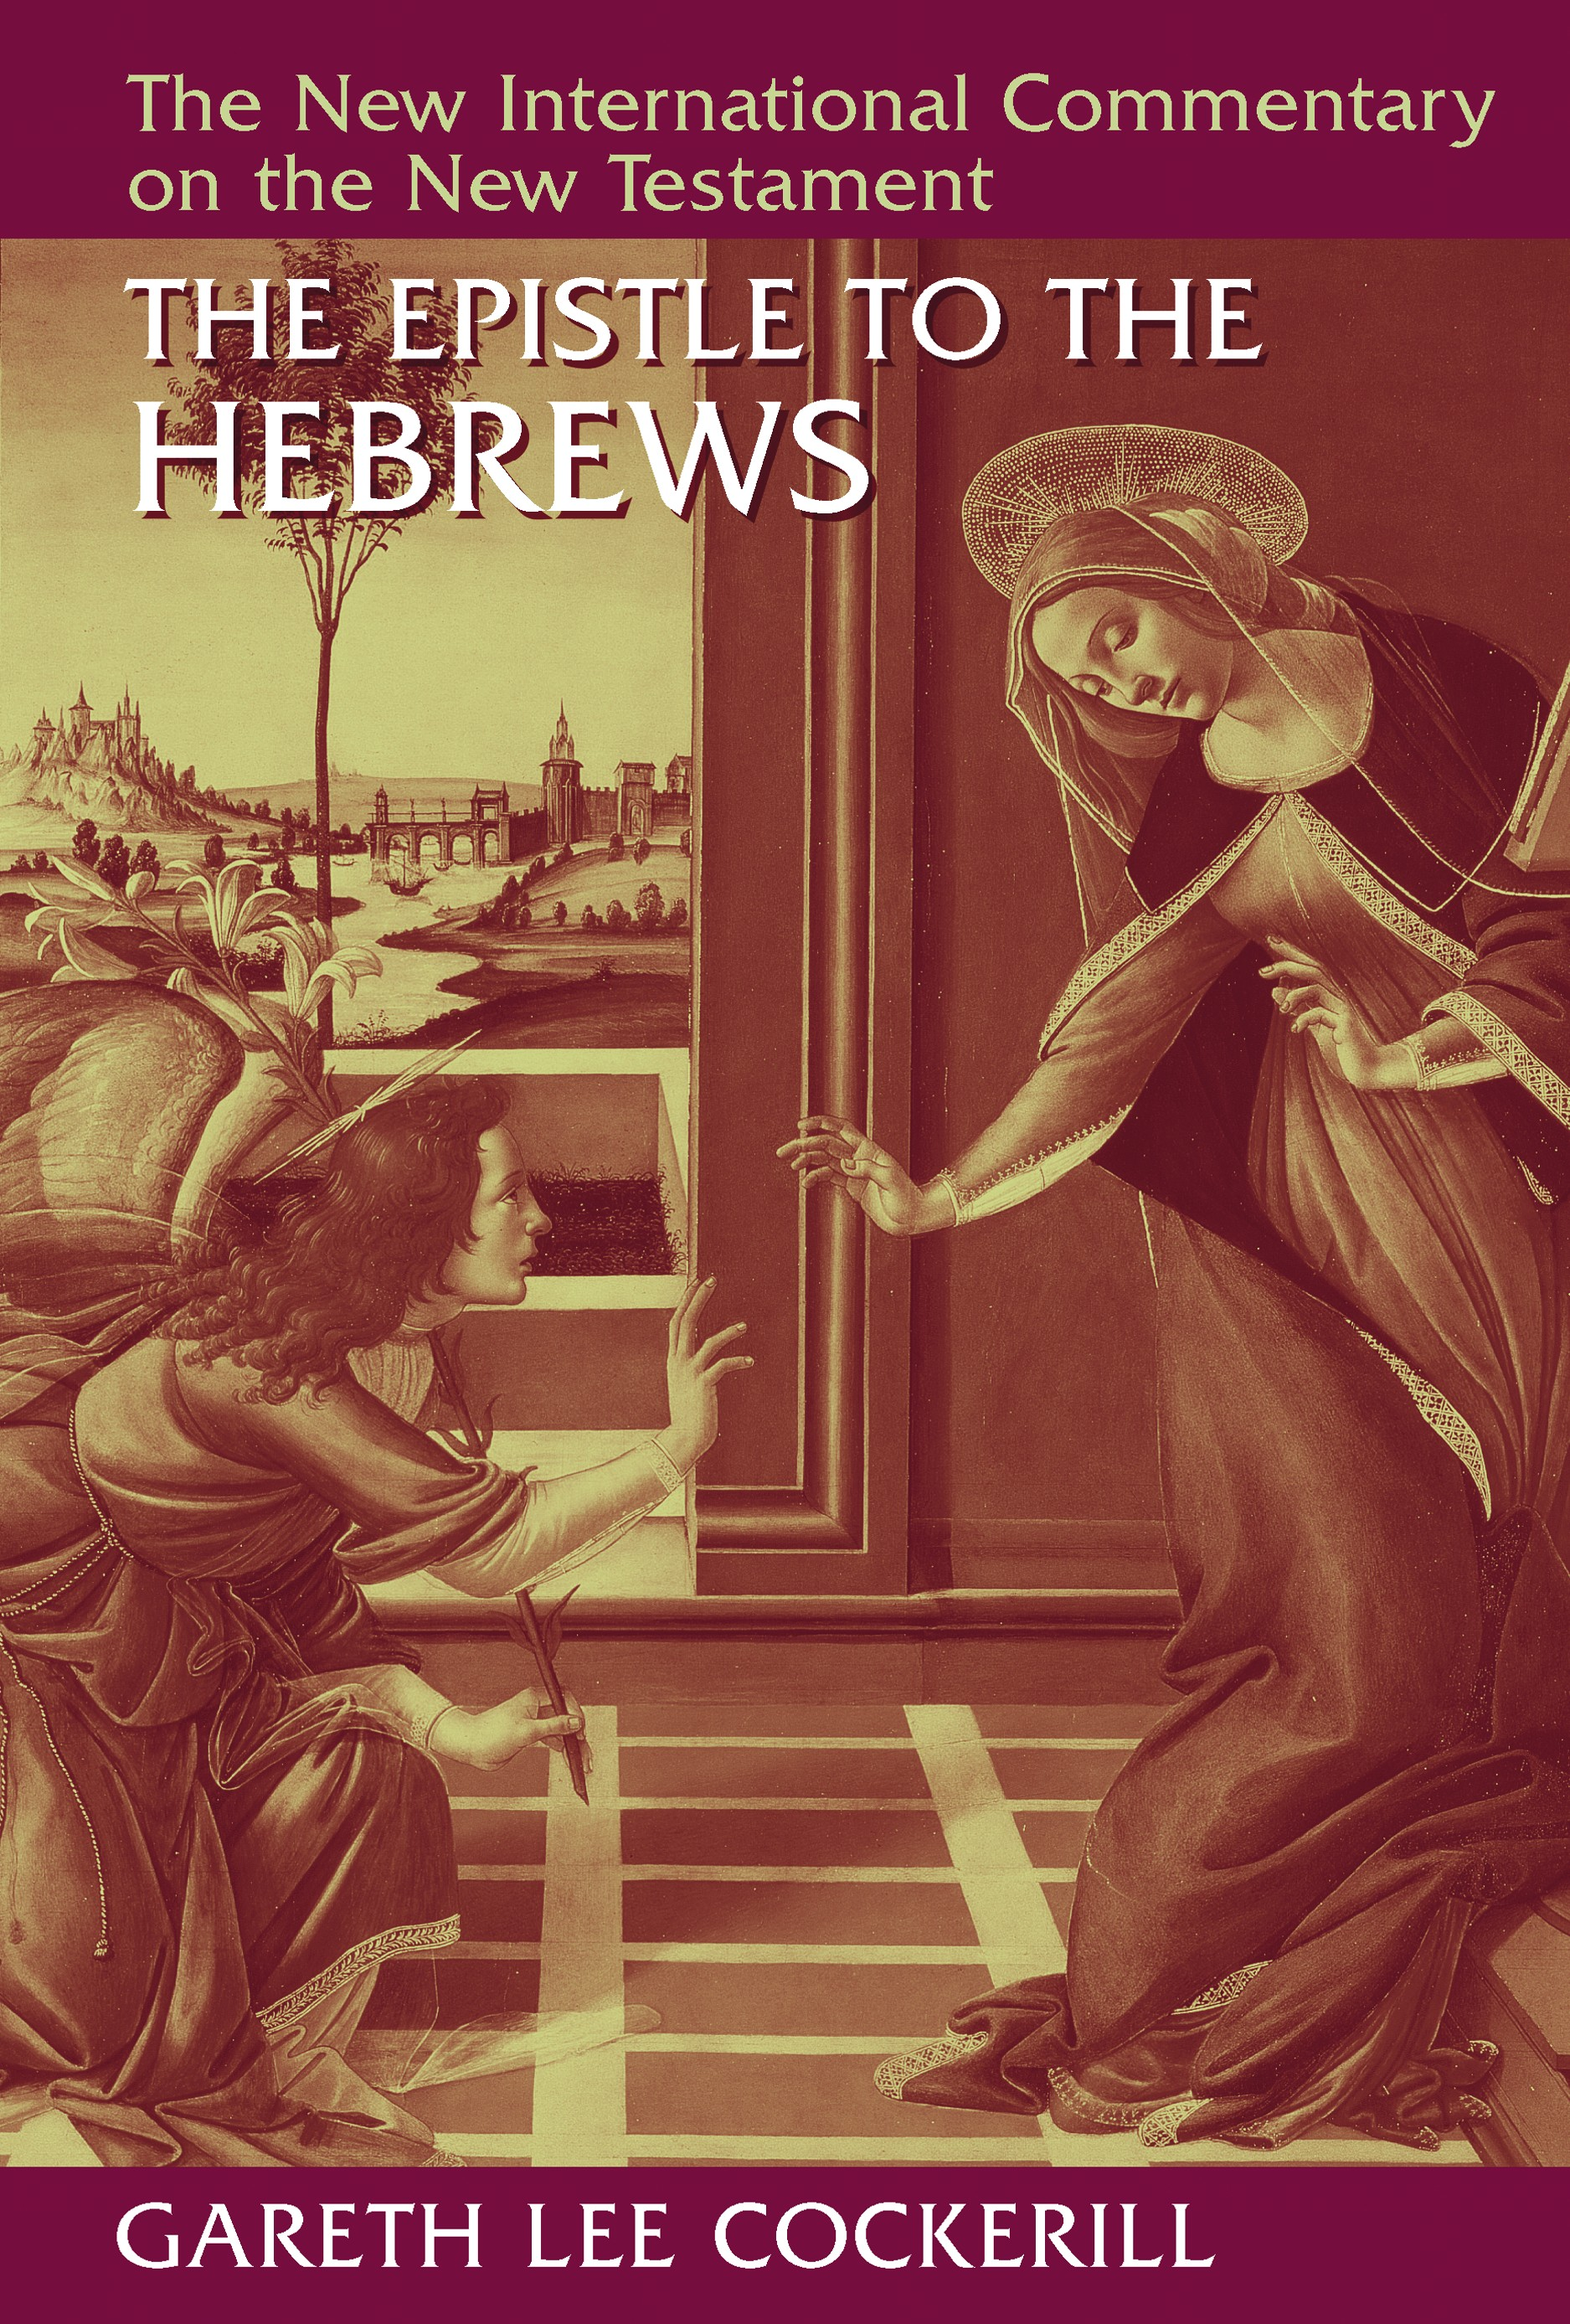 The Epistle to the Hebrews (NICNT)